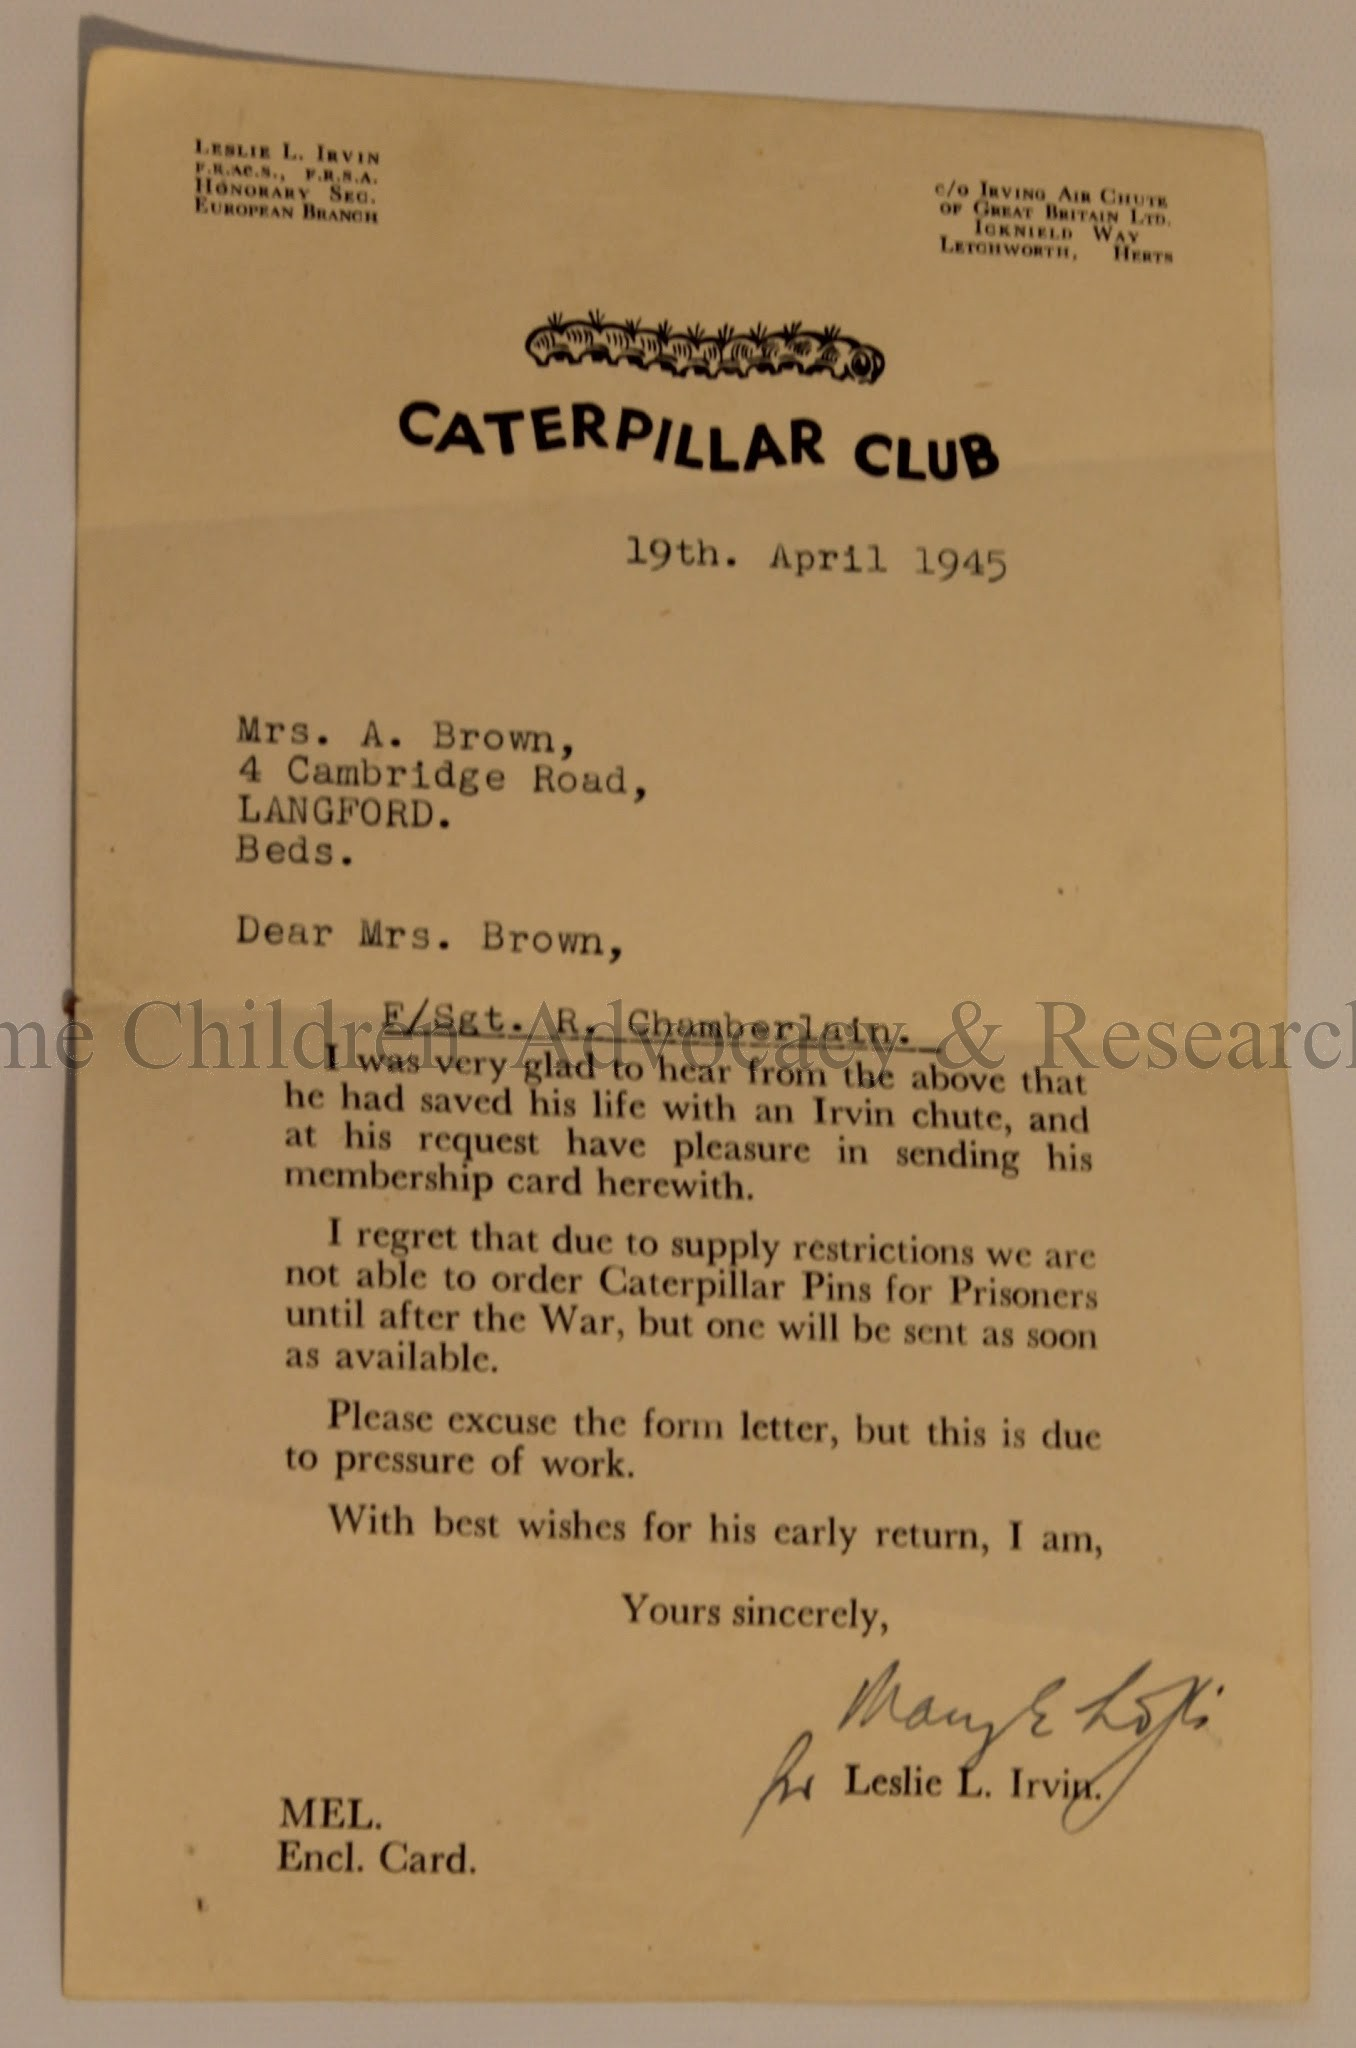 Membership to the Caterpillar Club